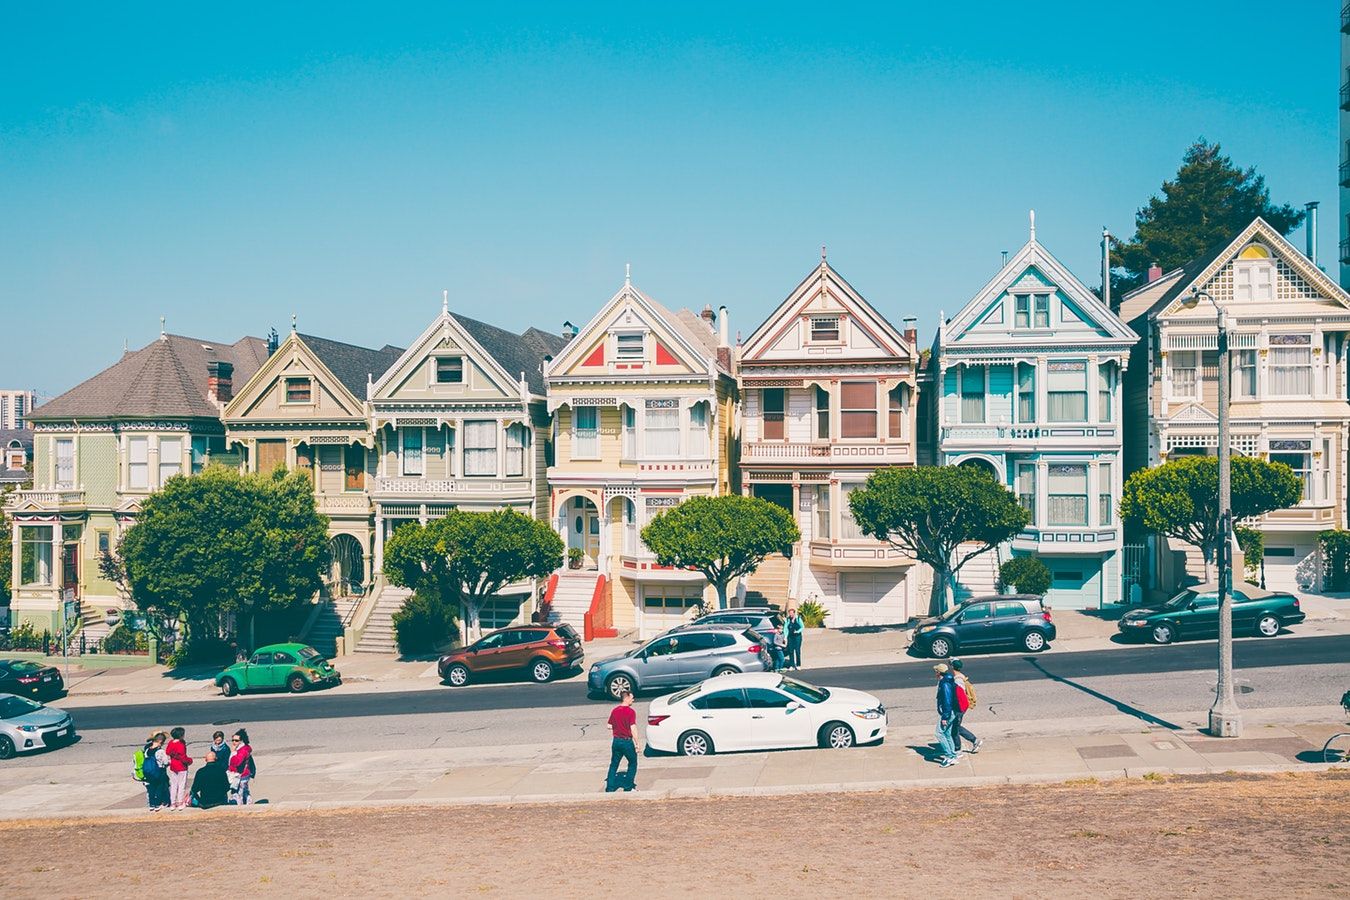 Photo: A San Francisco street with houses and people